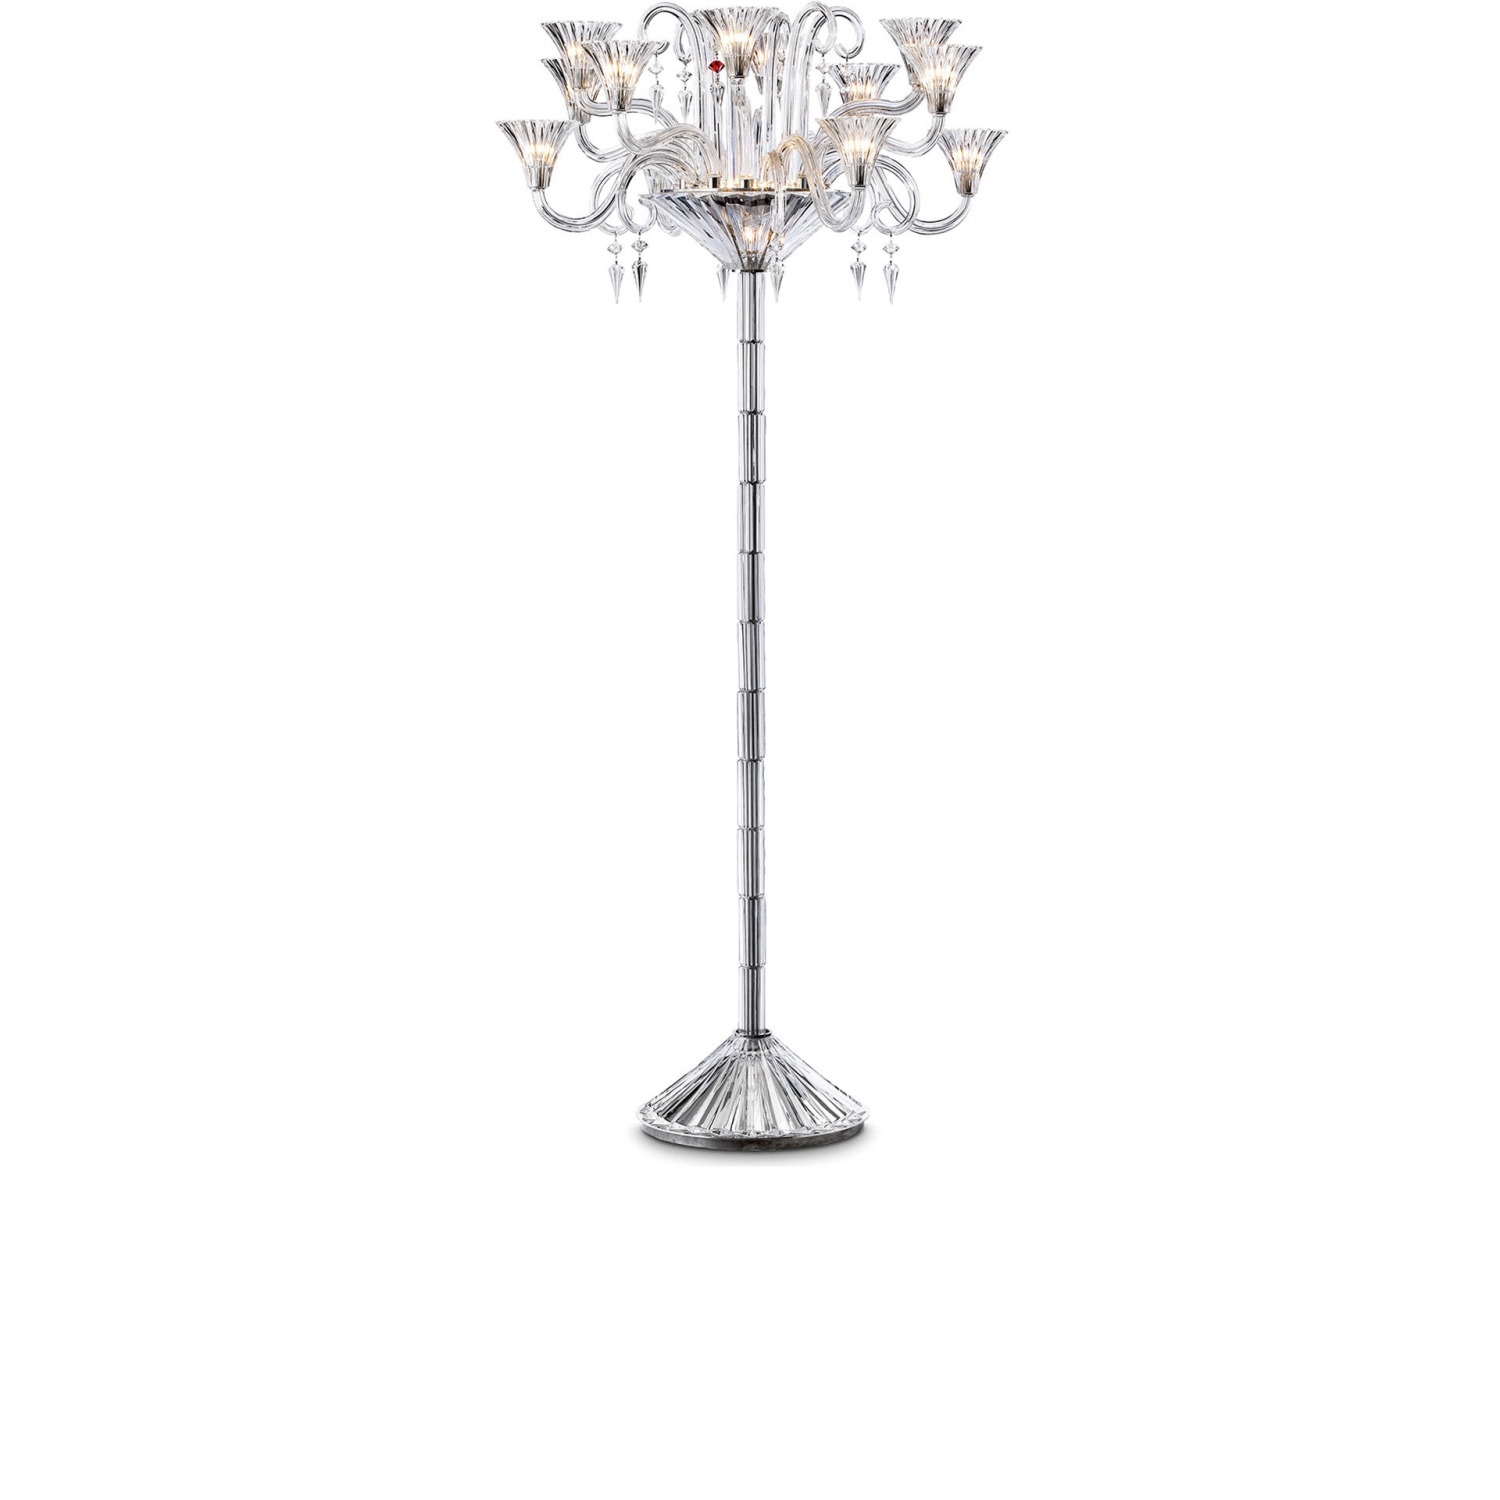 floor lamp clear Baccarat mille nuits 2610278